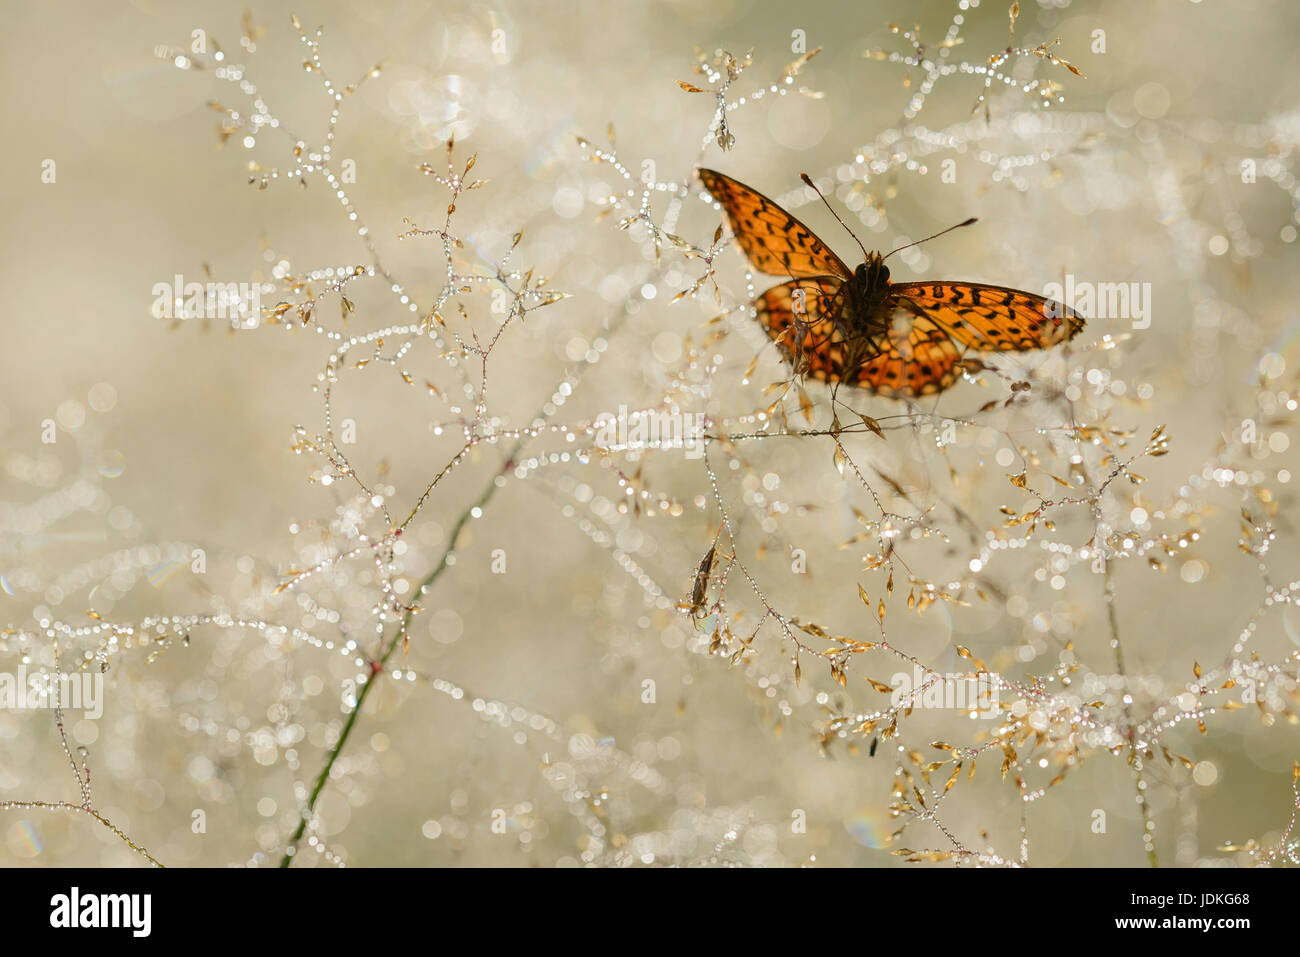 Brown-blotchy mother-of-pearl butterfly sits in grass laden with rope, Braunfleckiger Perlmuttfalter sitzt in taubehangenem - Stock Image